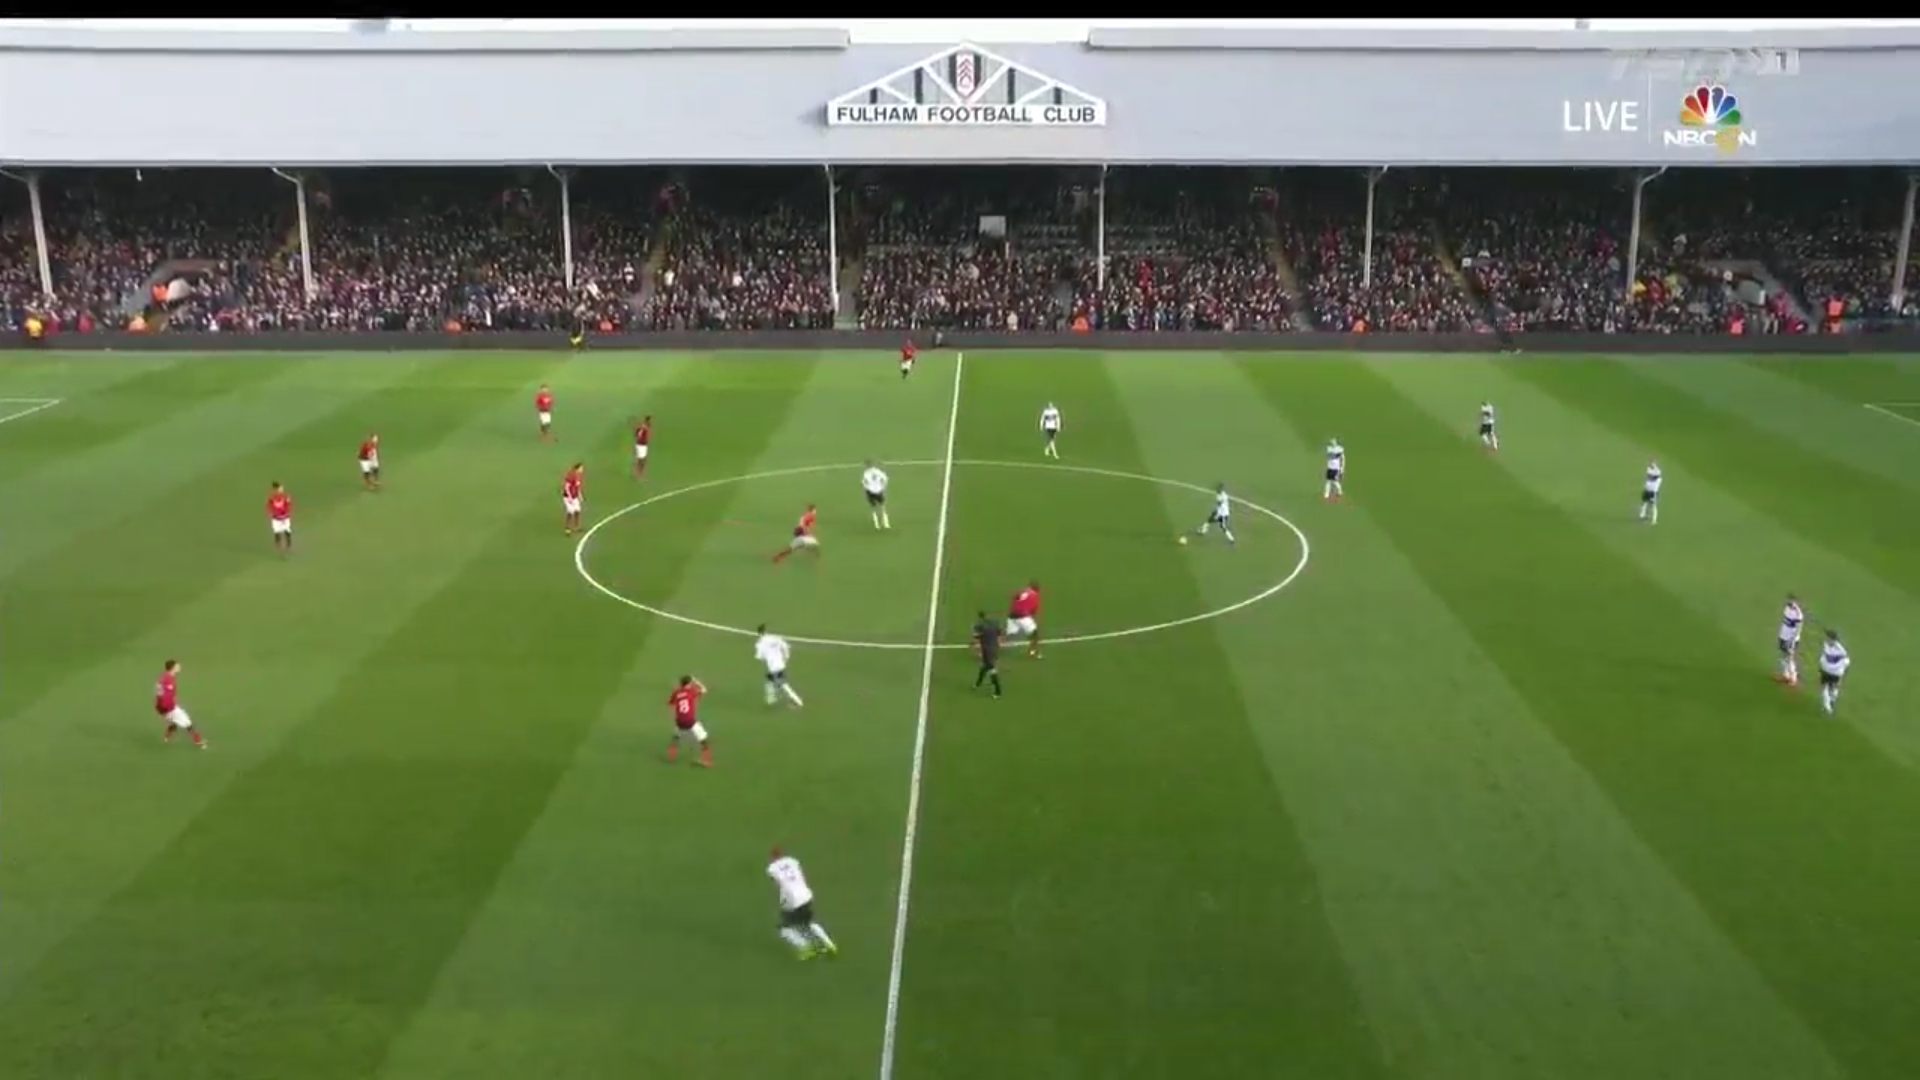 09-02-2019 - Fulham 0-3 Manchester United